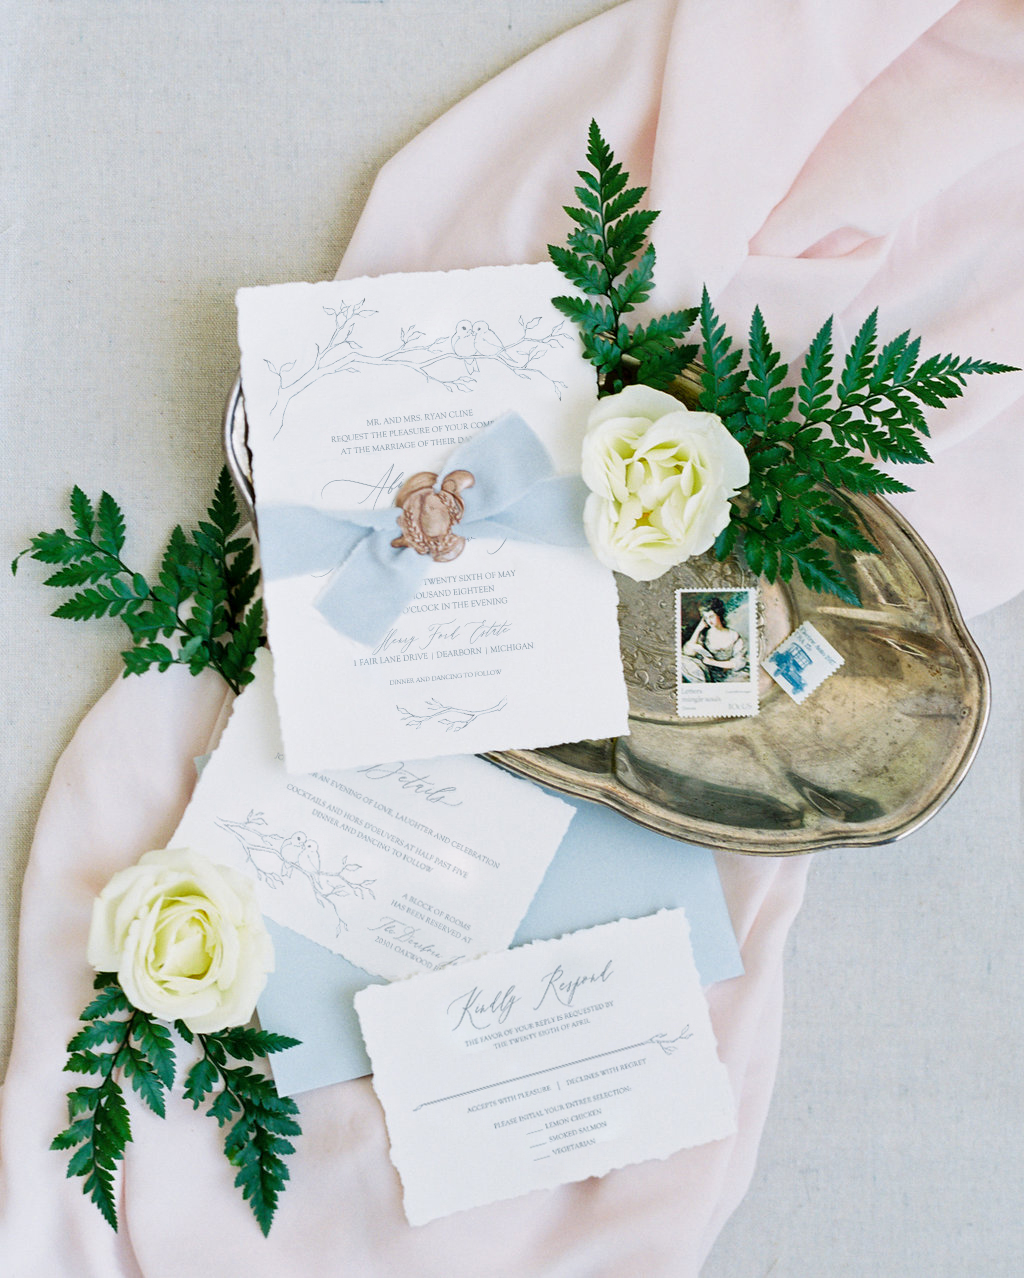 Fine art blue wedding invitations featuring handmadepaper and a delicate illustration with a pair of darling little birds!  These wedding invitations are perfect for a garden or outdoor wedding. #midwestwedding #weddinginspiration #fineartwedding